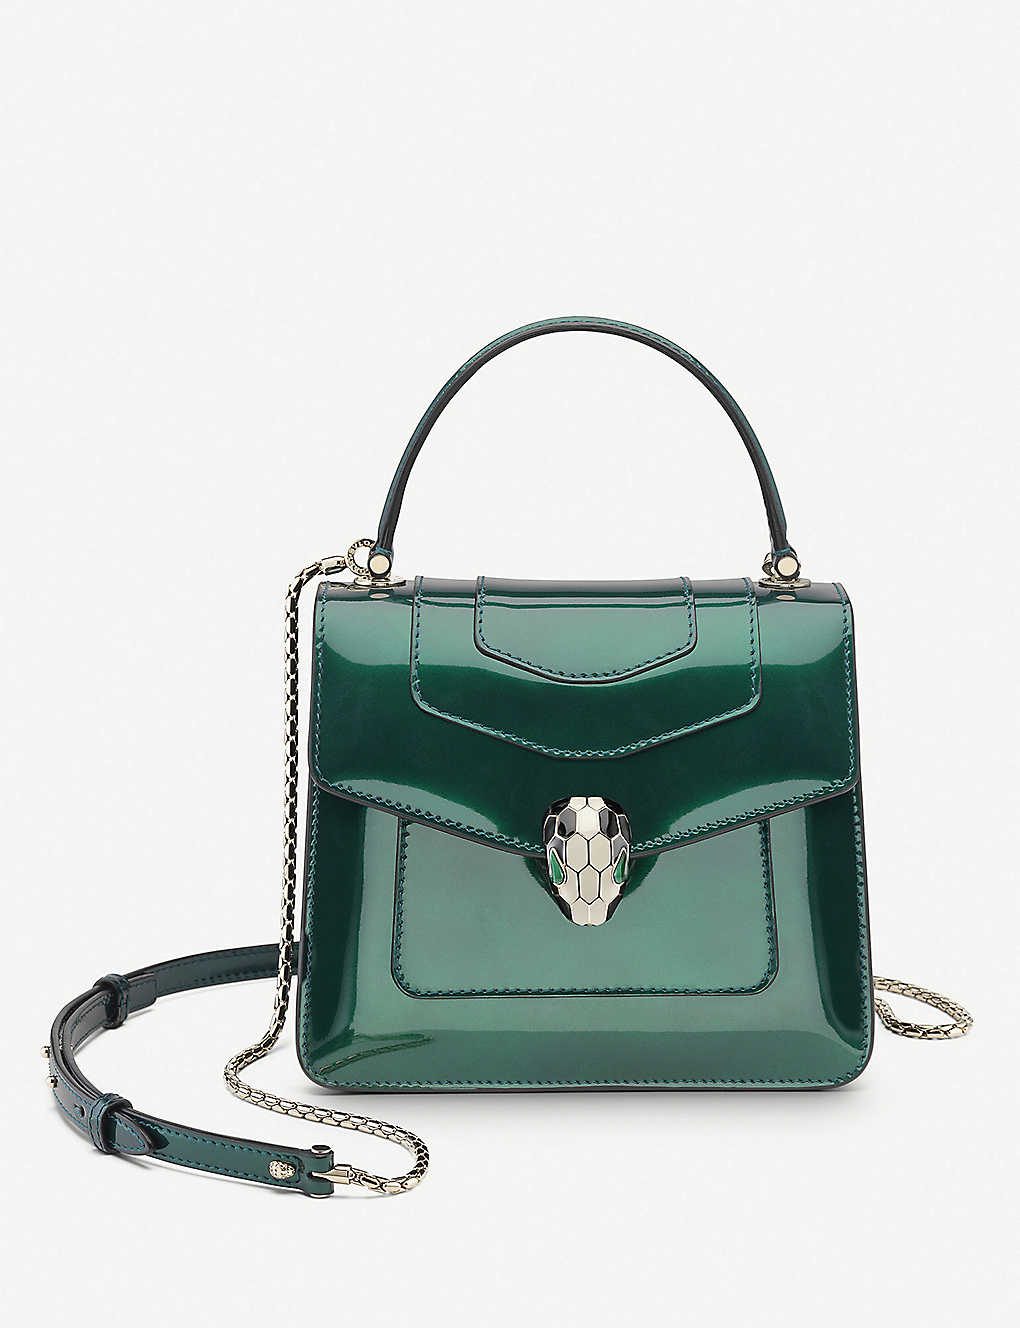 BVLGARI: Serpenti Forever leather top-handle bag